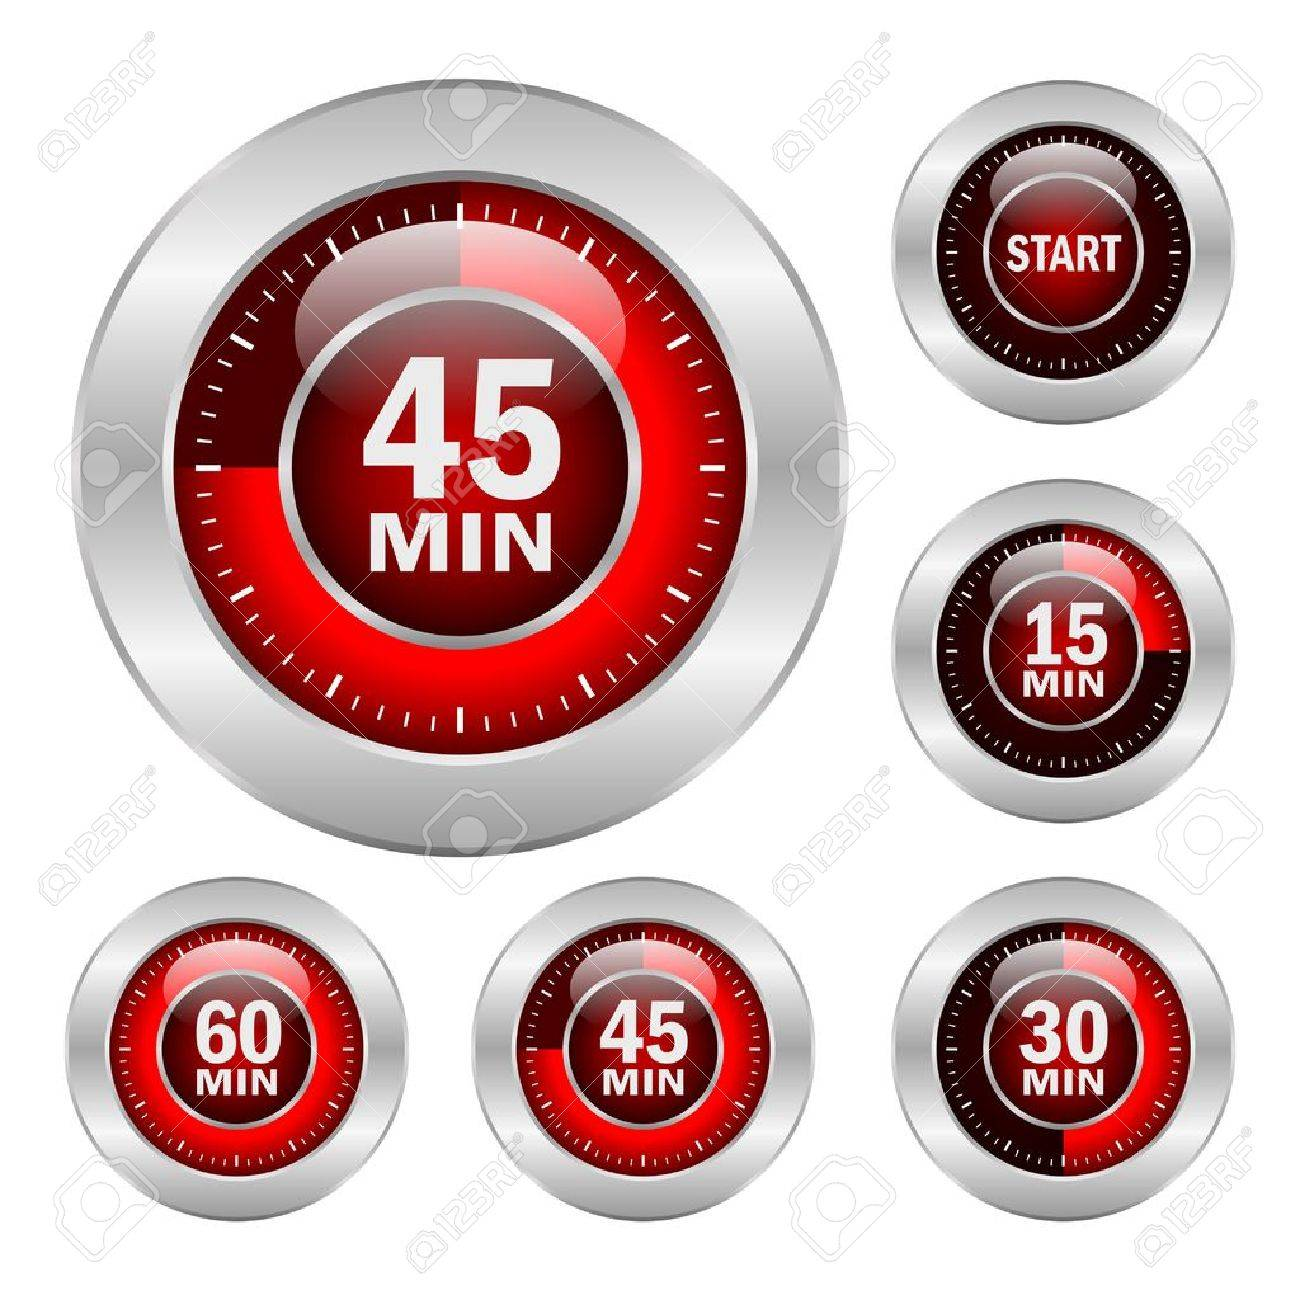 Timer icons Stock Vector - 15714156